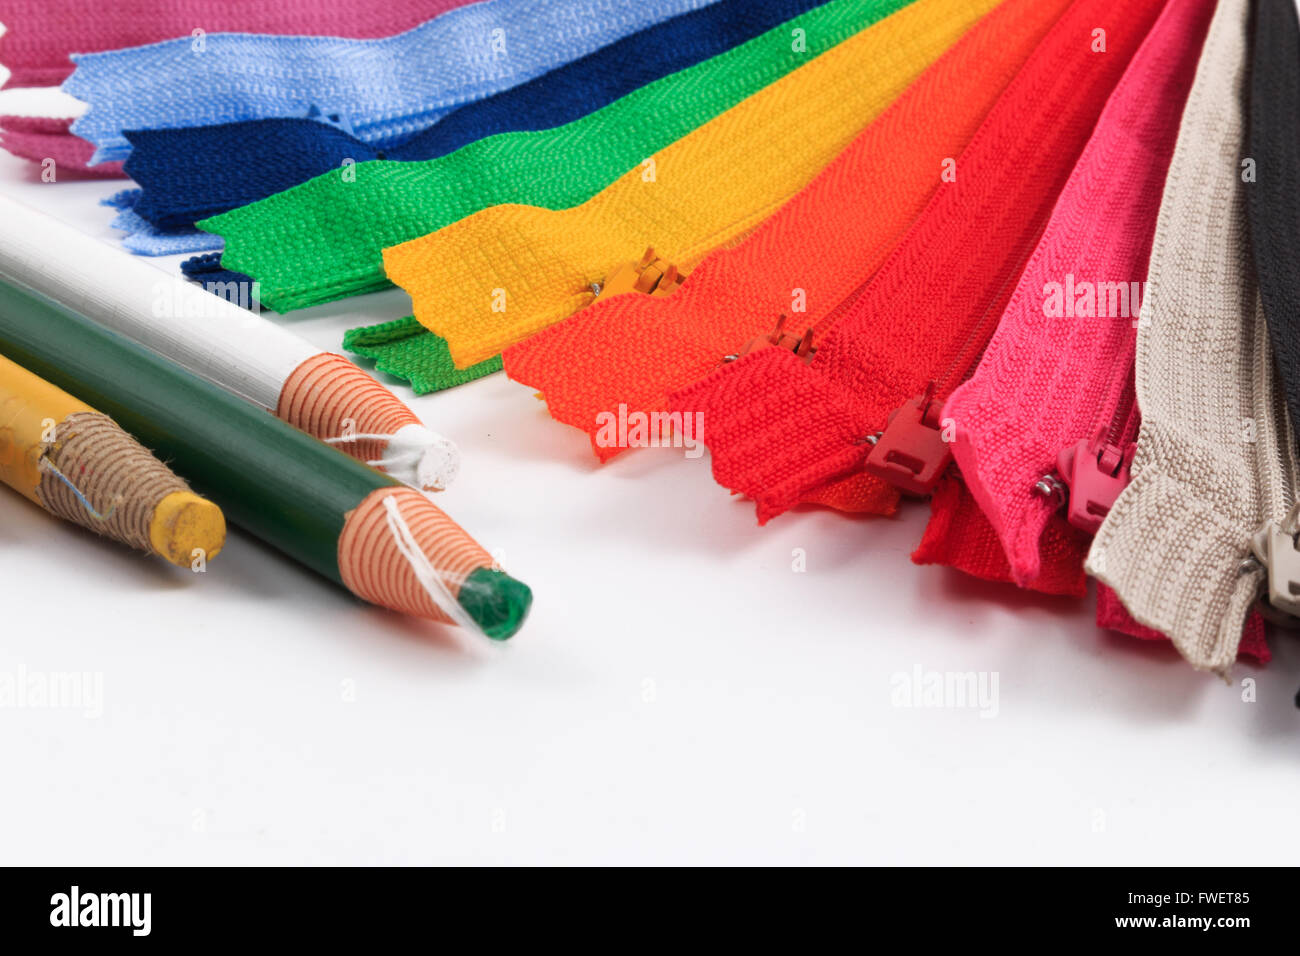 Colorful zippers and pencils white background. - Stock Image